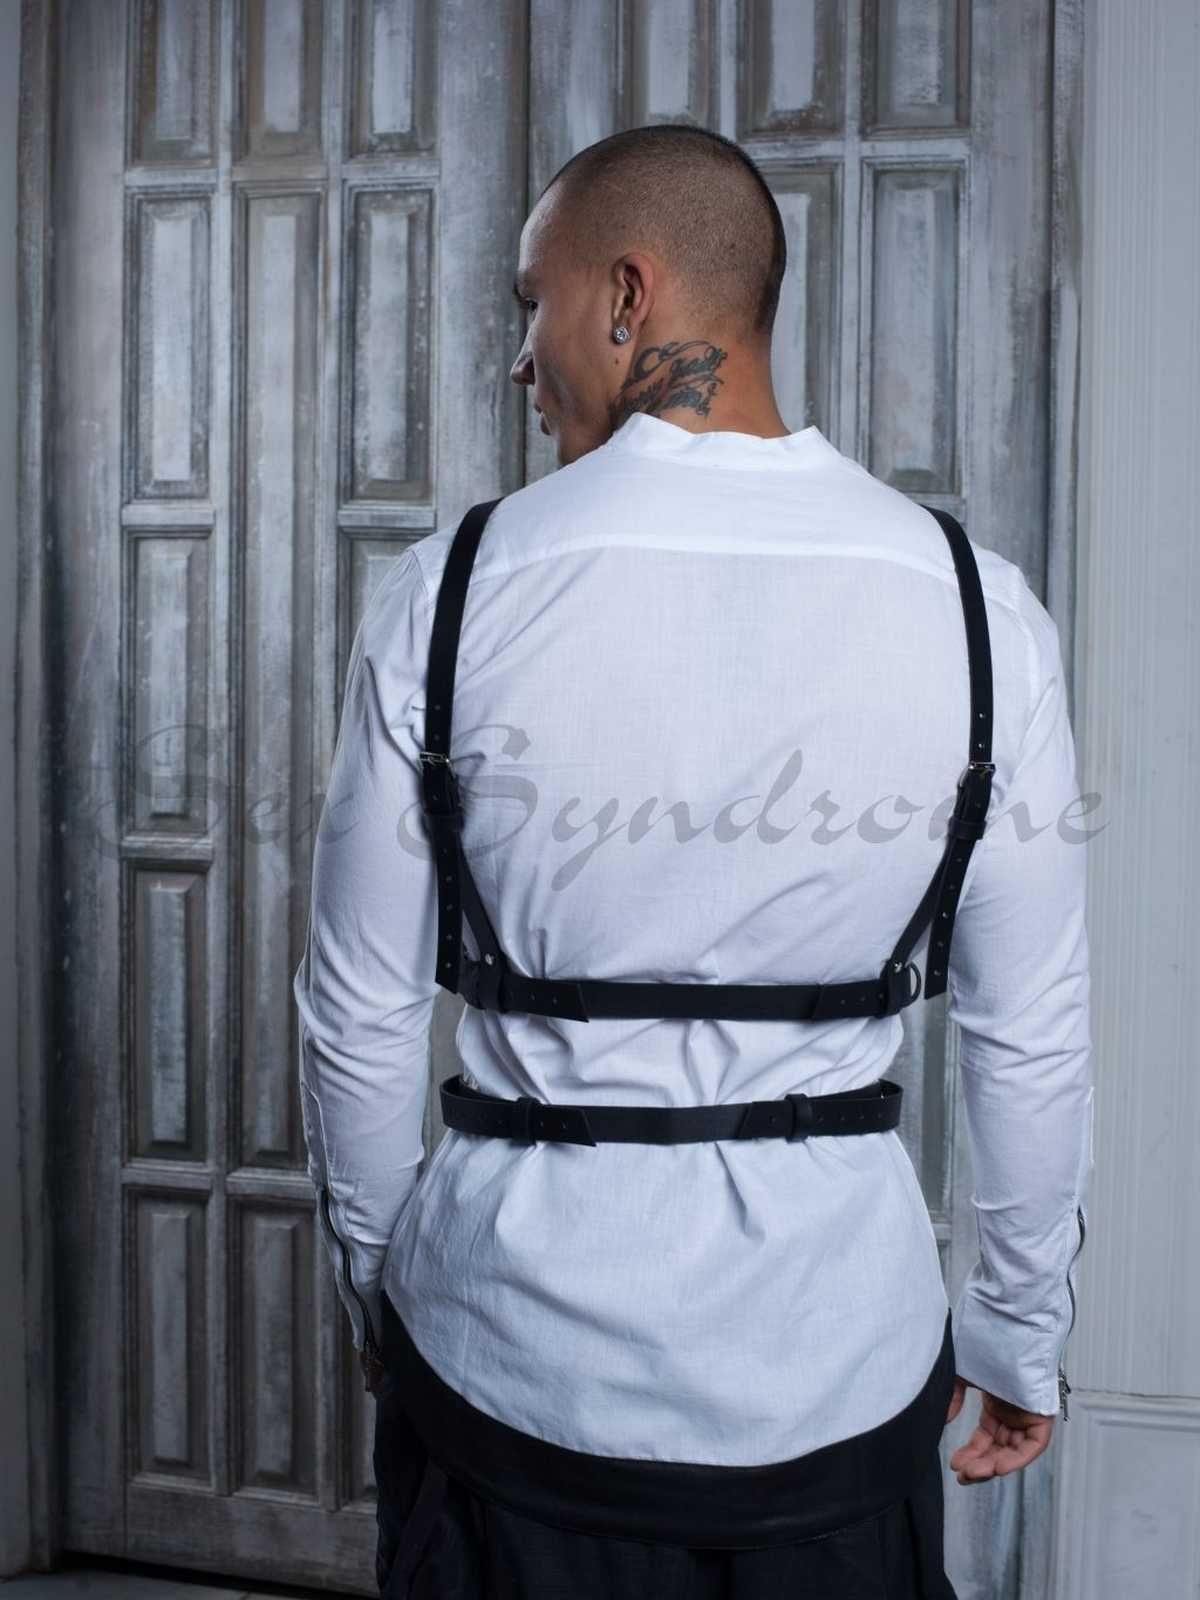 Leder harness Dominant